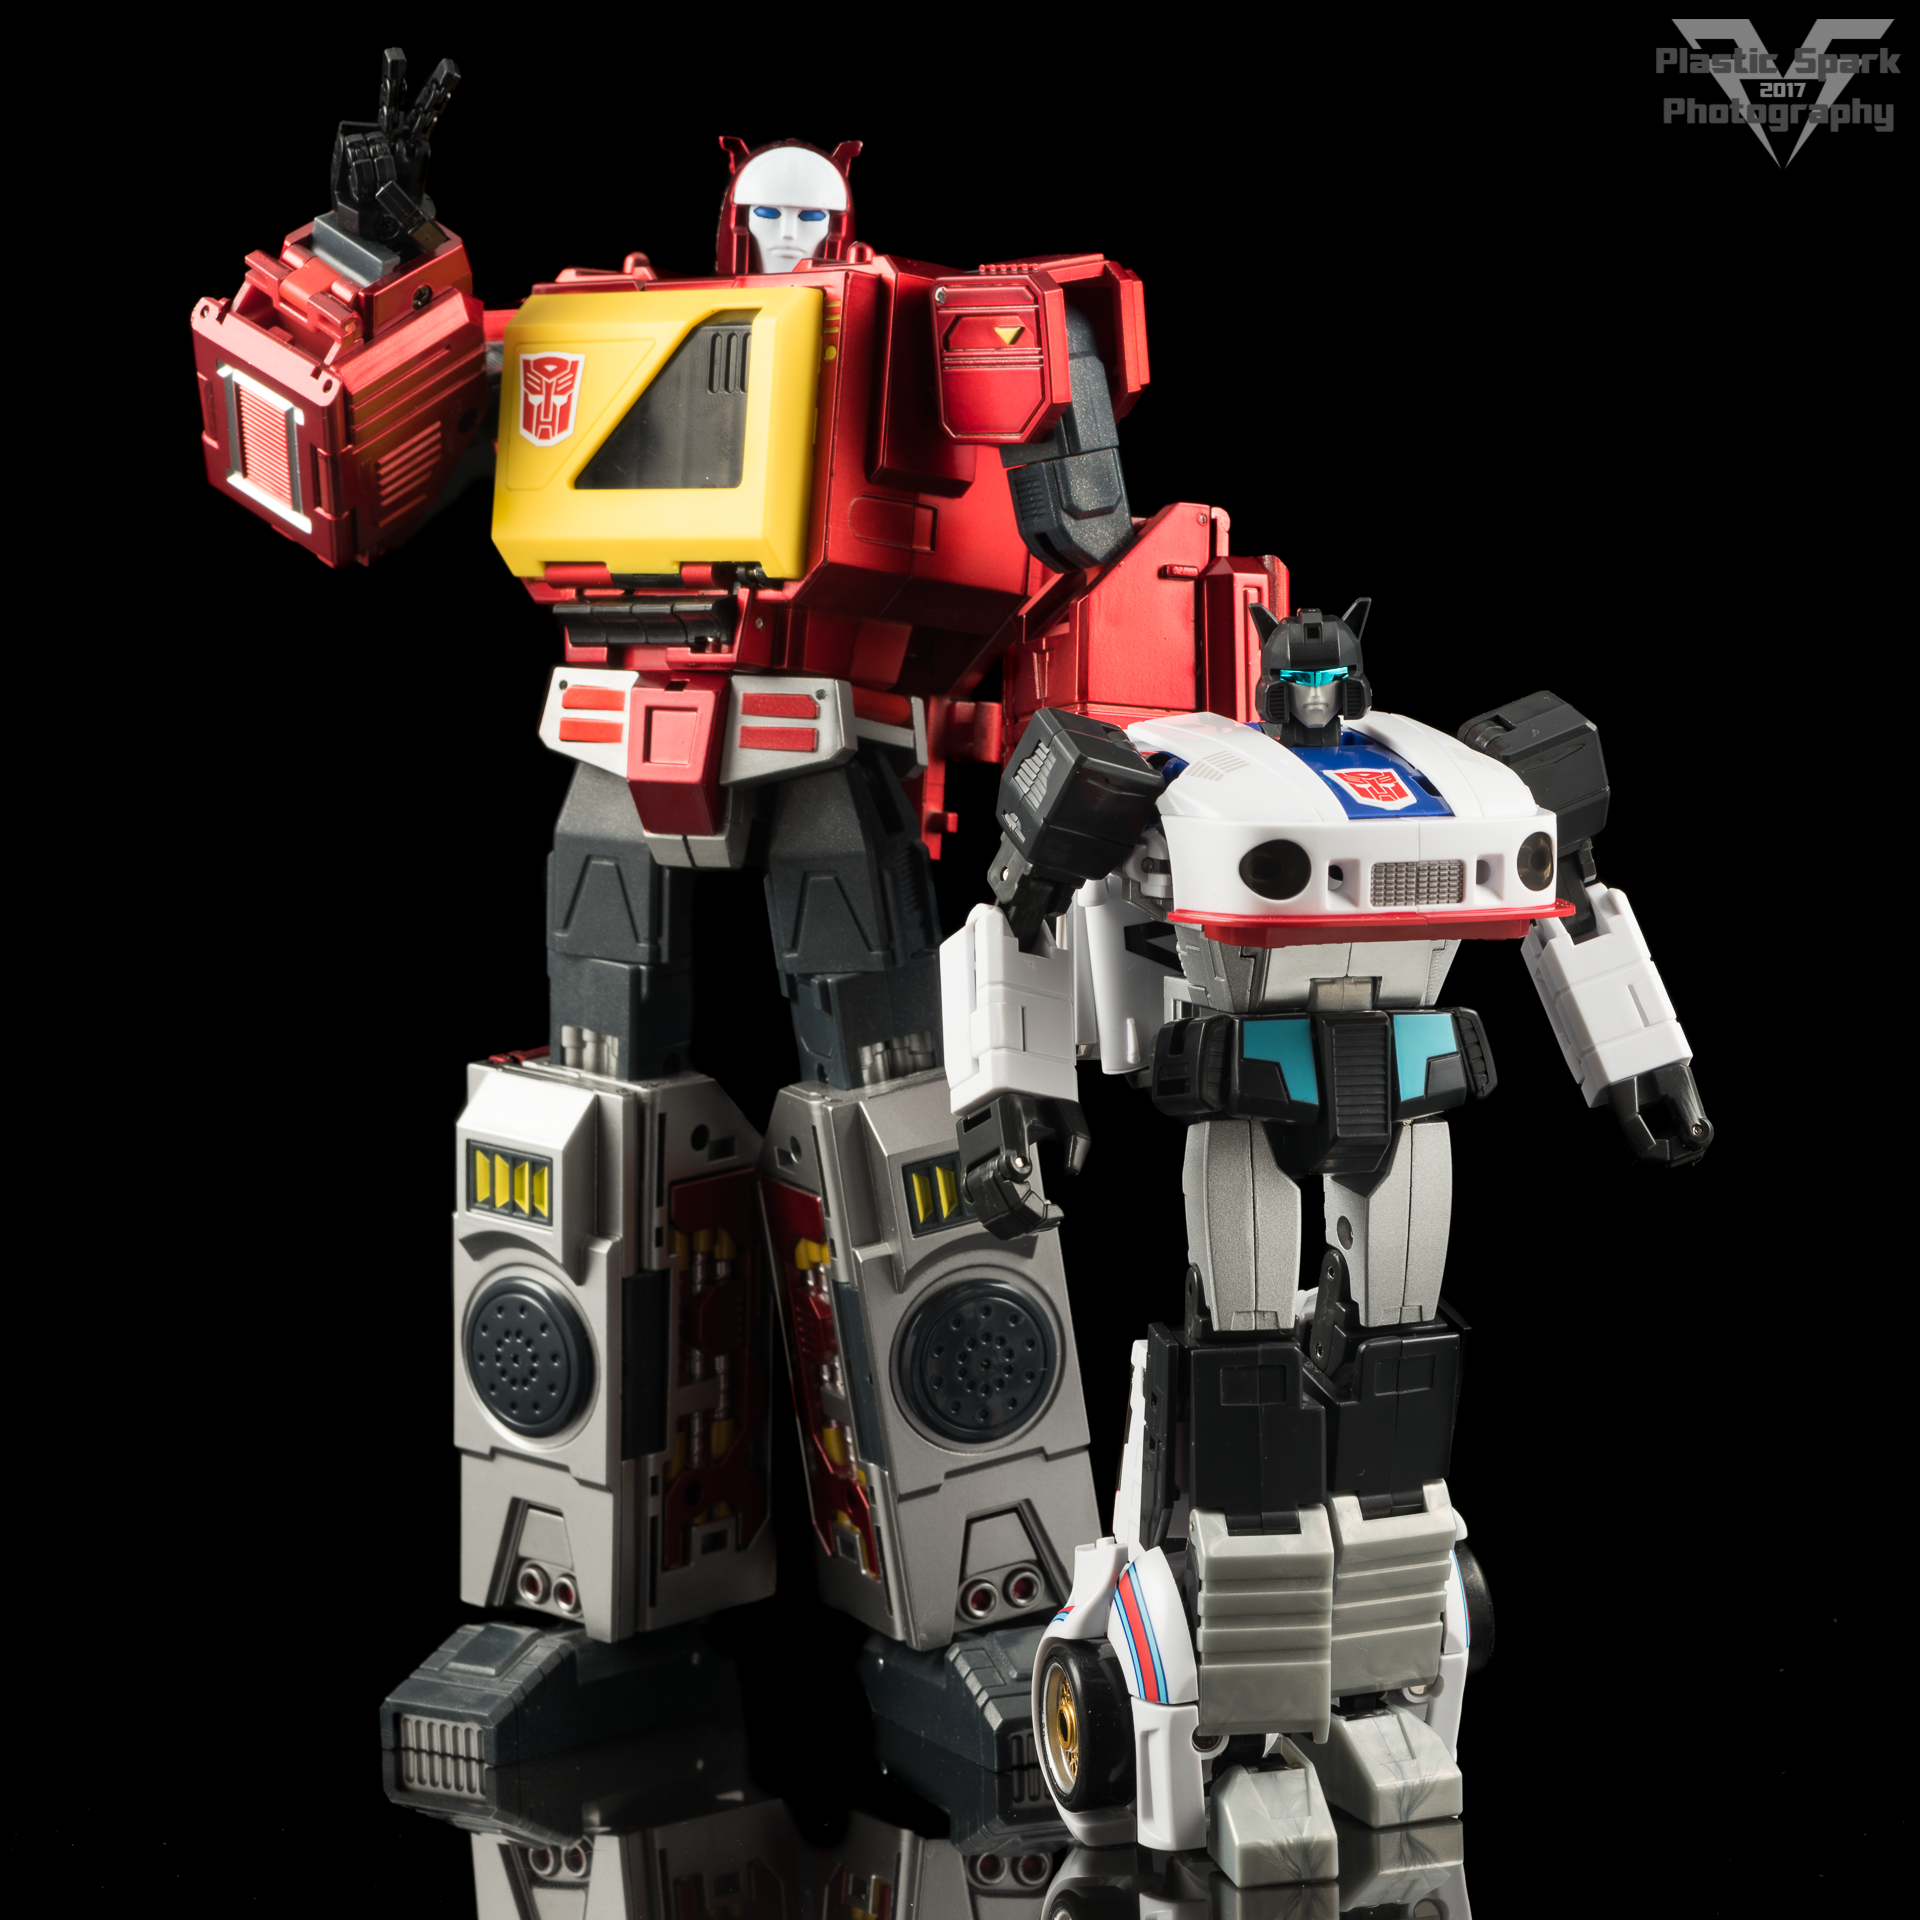 MakeToys-Re-Master-MTRM-09-Downbeat--(41-of-42).png